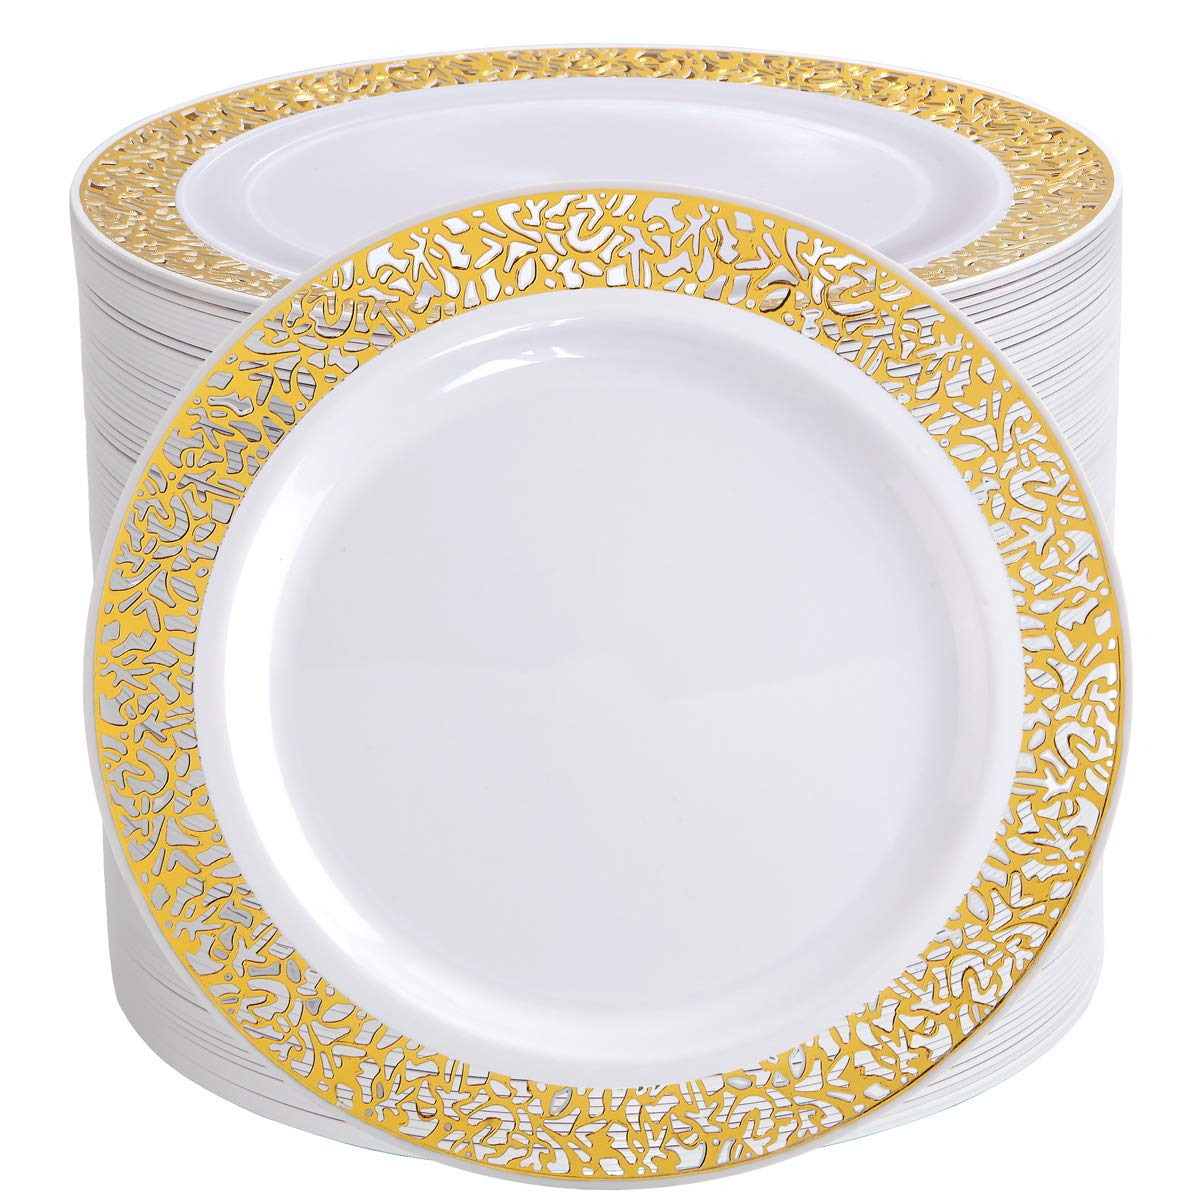 I00000 102 Pieces Gold Lunch Plates, 9'' Plastic Dinner Plates with Lace Design, Disposable Gold Dinner Plates by I00000